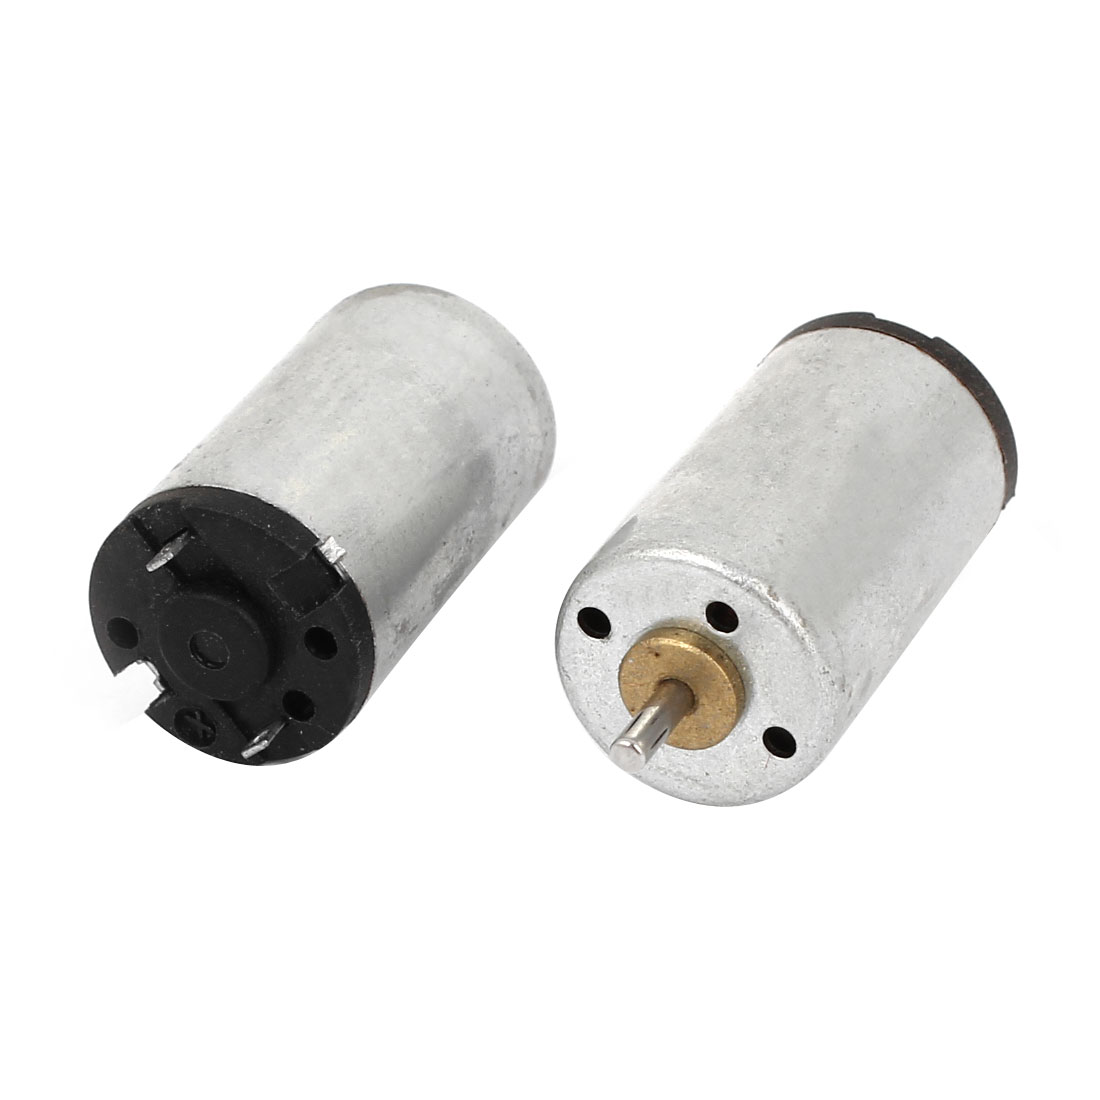 2pcs DC 1.25-3.7V 22000RPM 2 Terminal 1.5mm Shaft Cylinder DC Motor for RC Toy